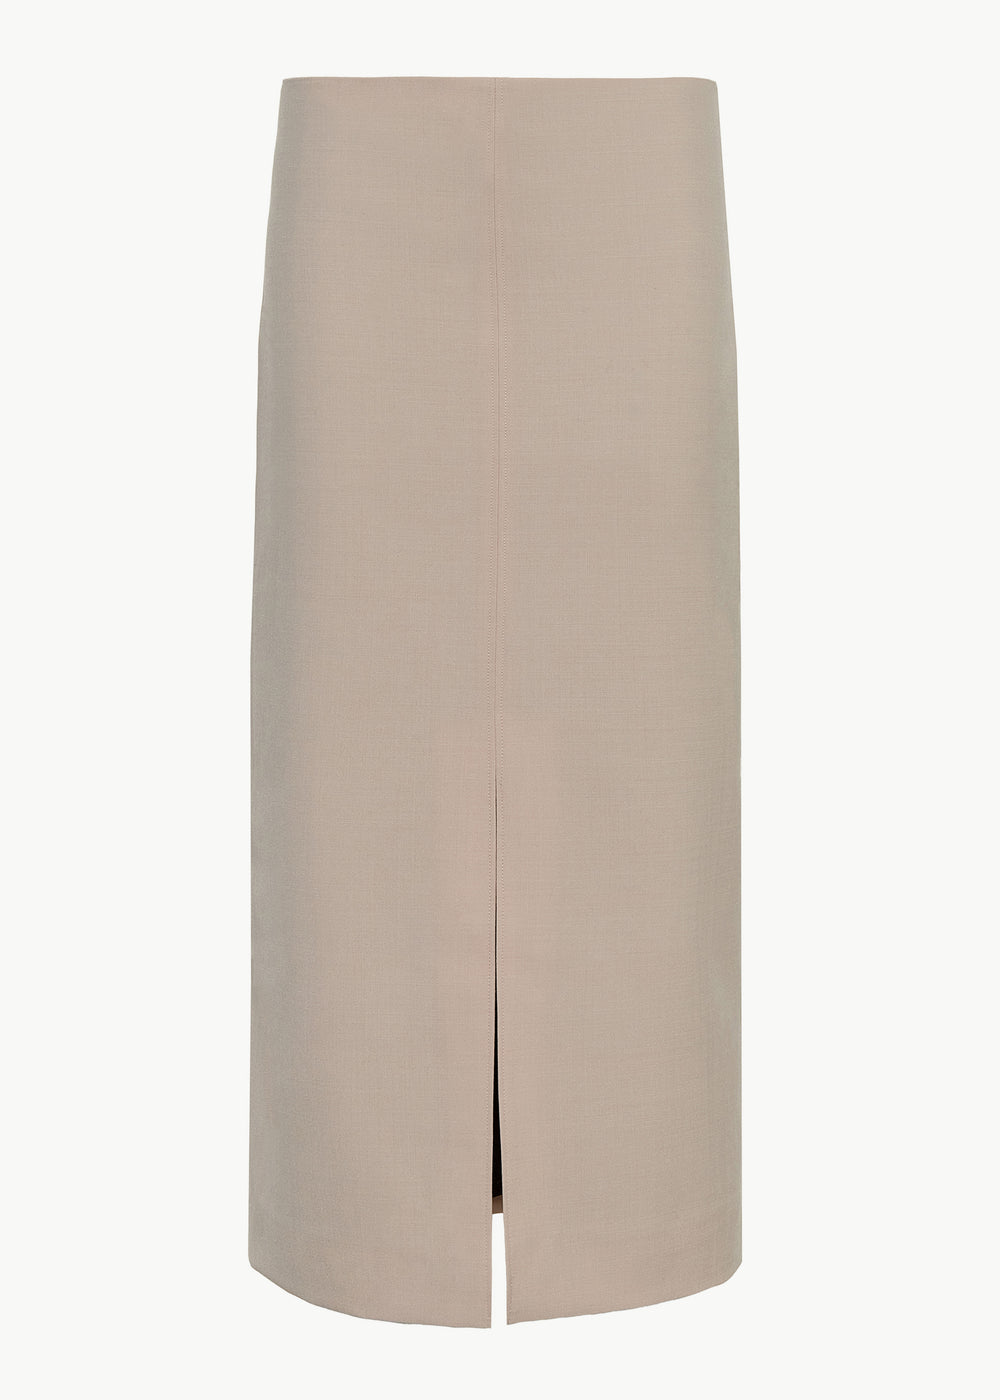 Pencil Skirt in Stretch Wool - Beige - CO